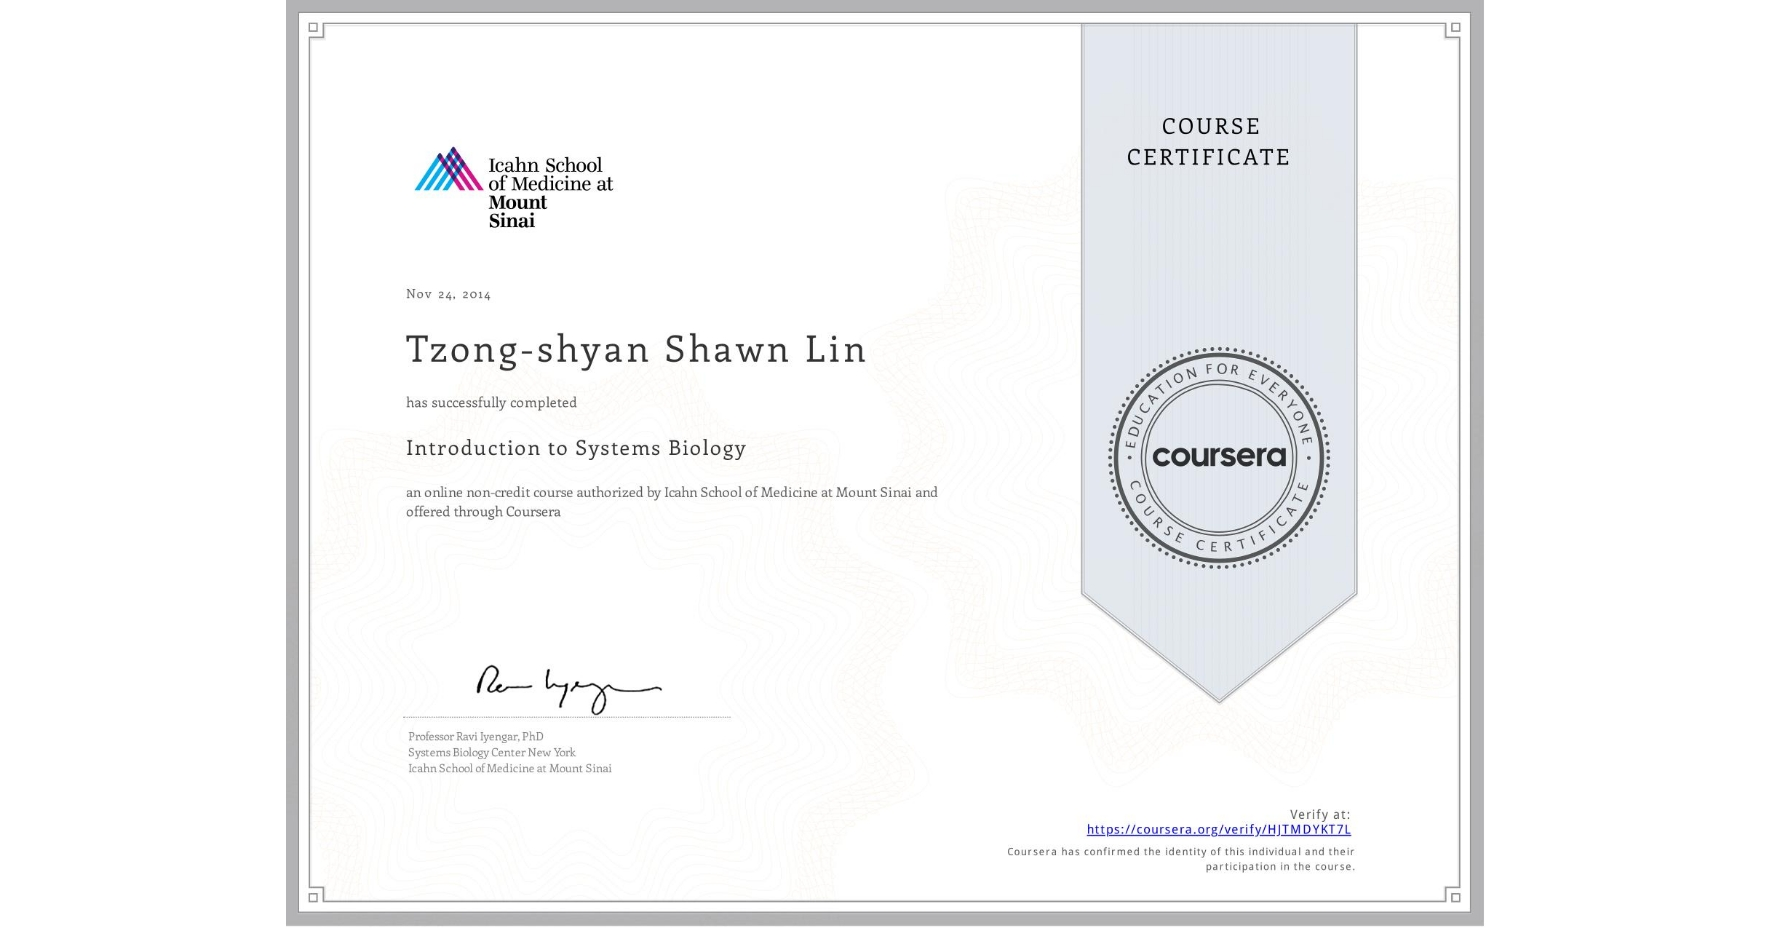 View certificate for Tzong-shyan Shawn Lin, Introduction to Systems Biology, an online non-credit course authorized by Icahn School of Medicine at Mount Sinai and offered through Coursera